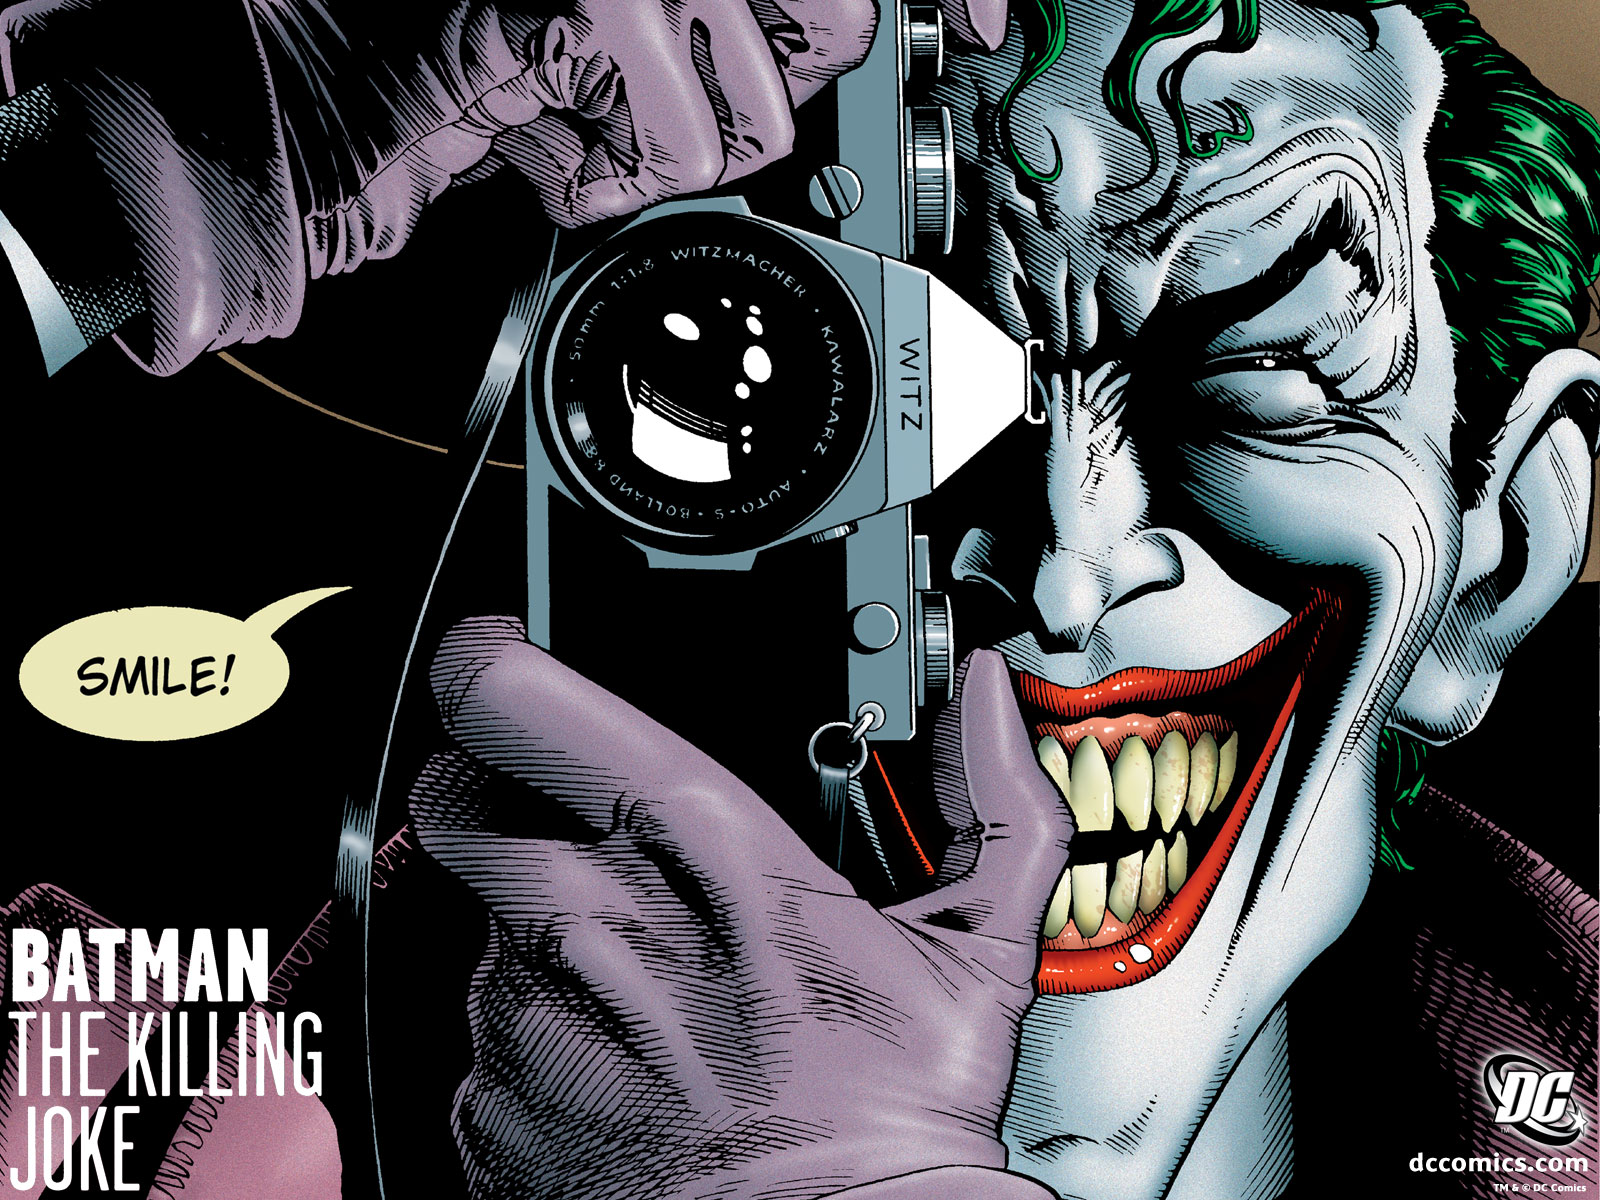 http://3.bp.blogspot.com/-_ZGh97I_H7E/T2iO7dD4QII/AAAAAAAAA6U/G7vMX9AF_9I/s1600/Batman_The_Killing_Joke_Joker_Comics_Cover_HD_Wallpaper.jpg